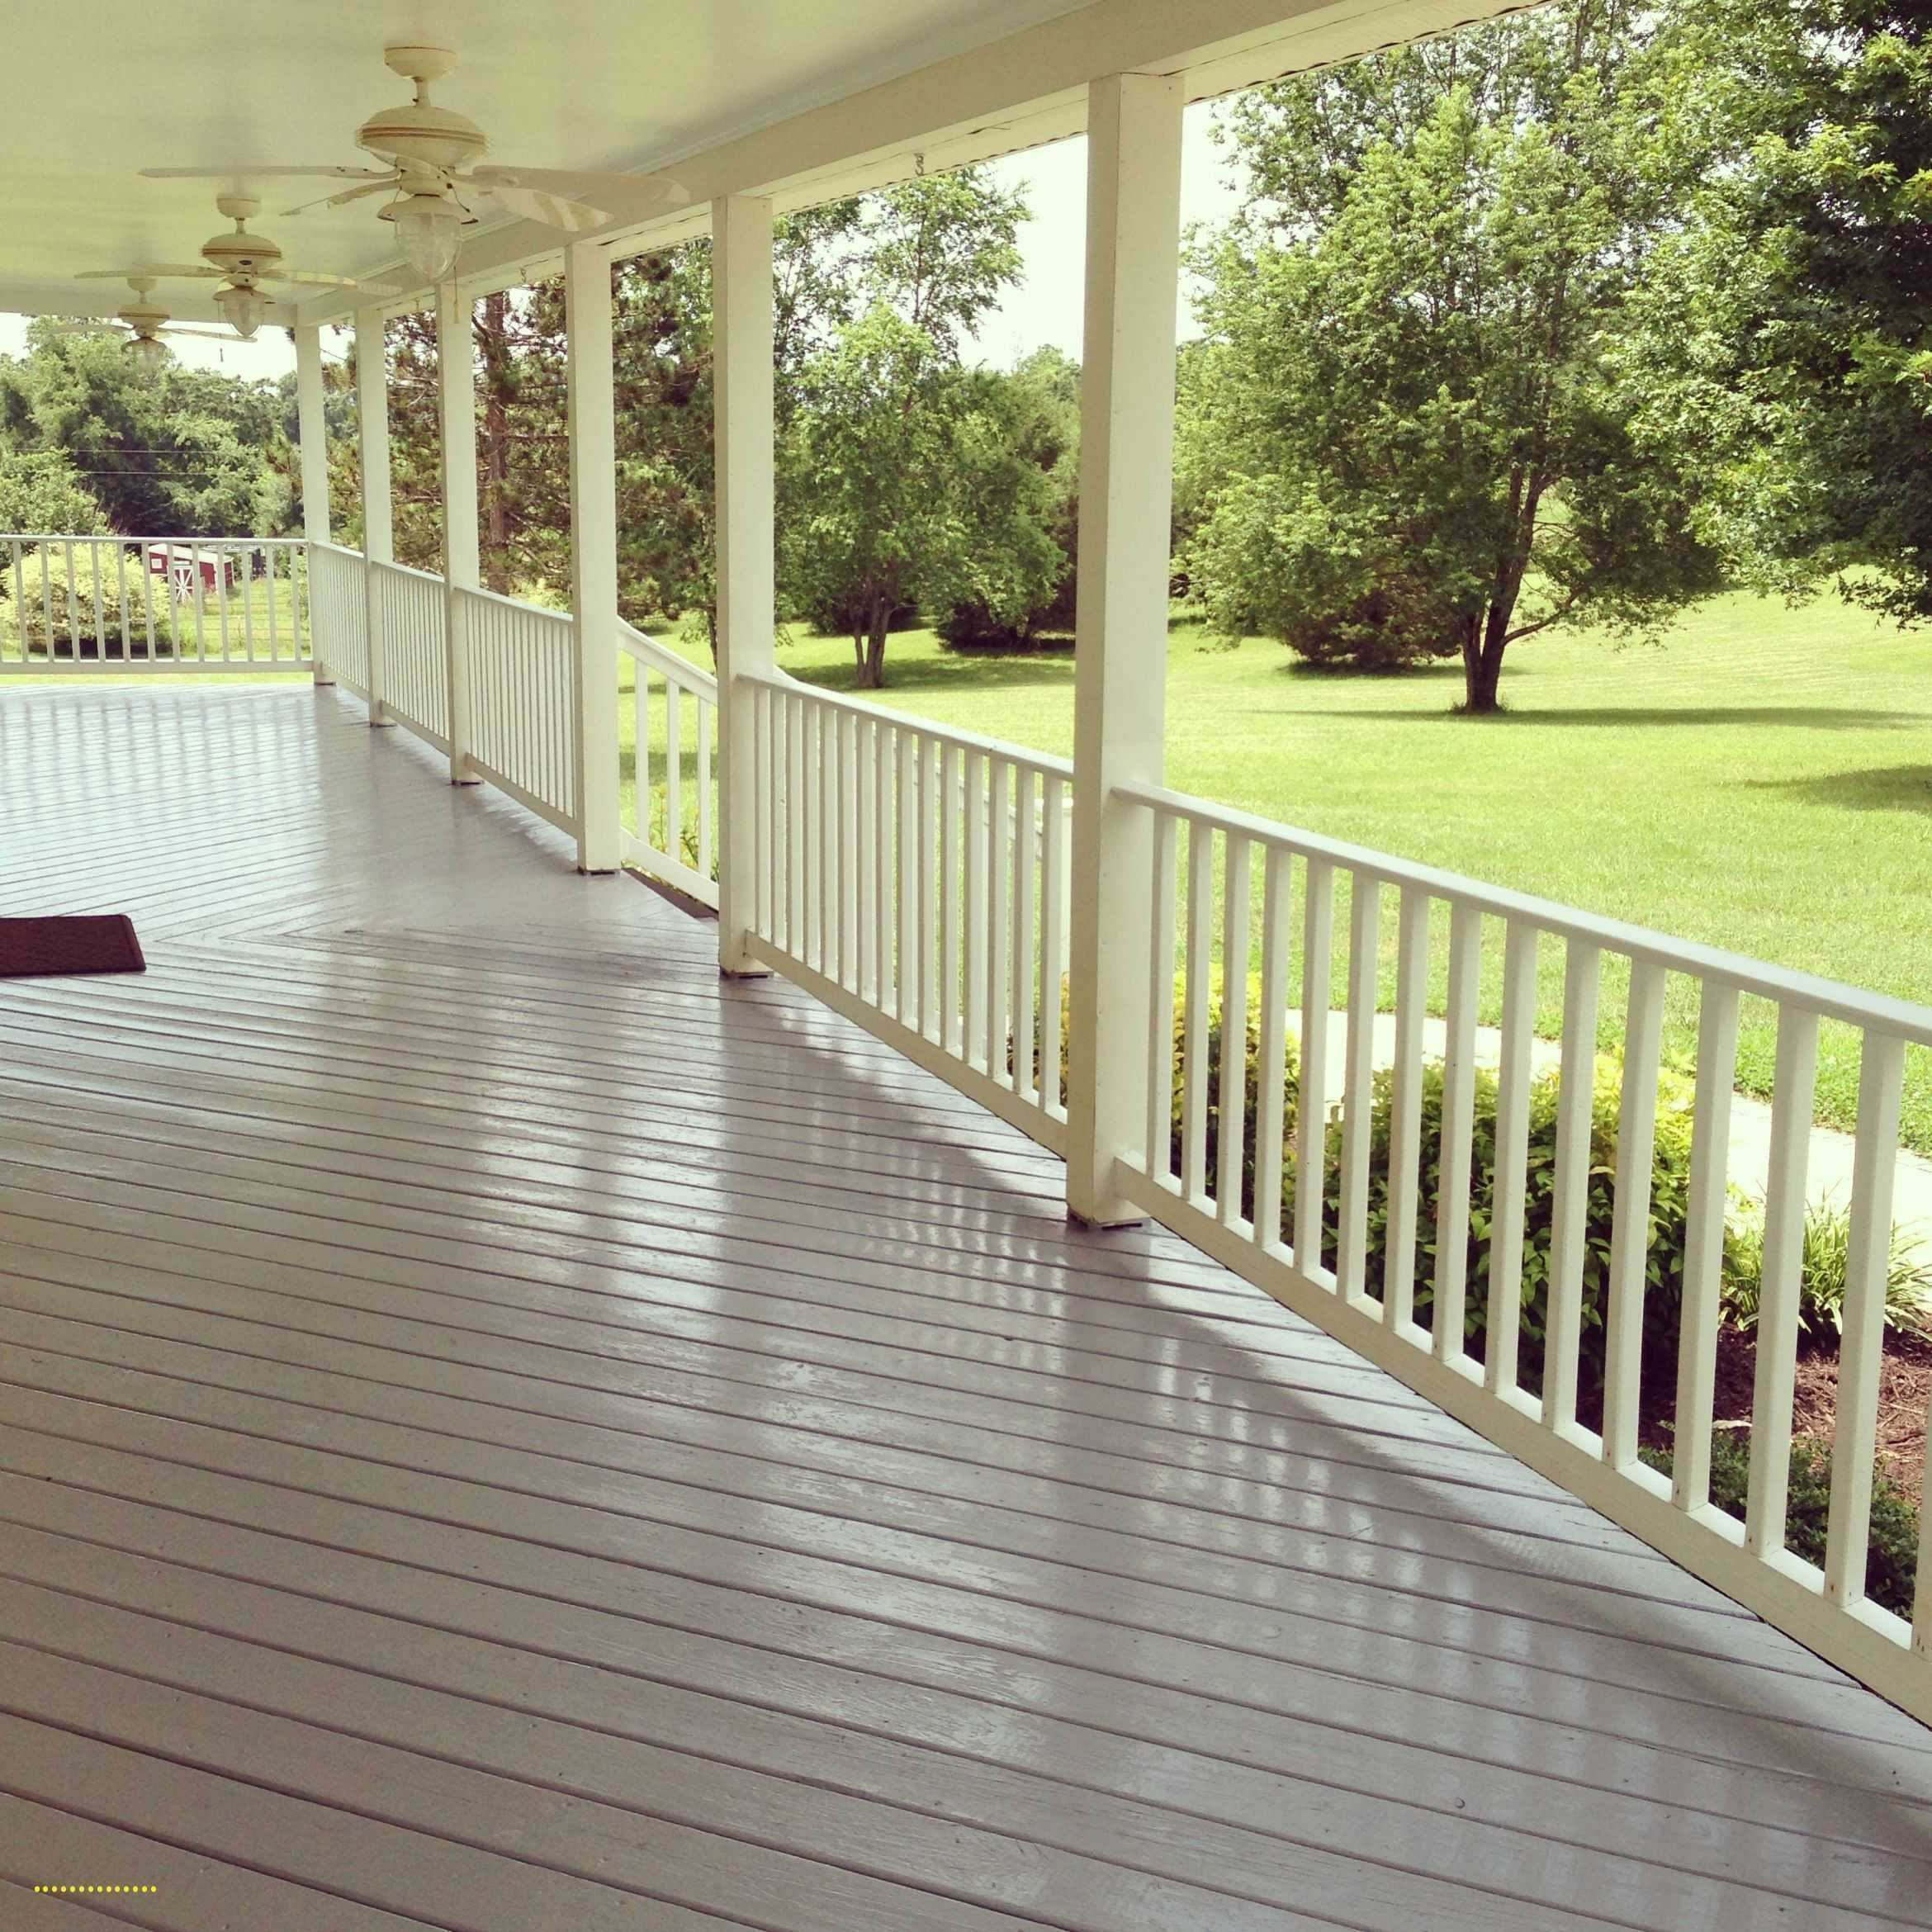 Awesome Pictures Of Porch Railings https://noordinaryhome ...